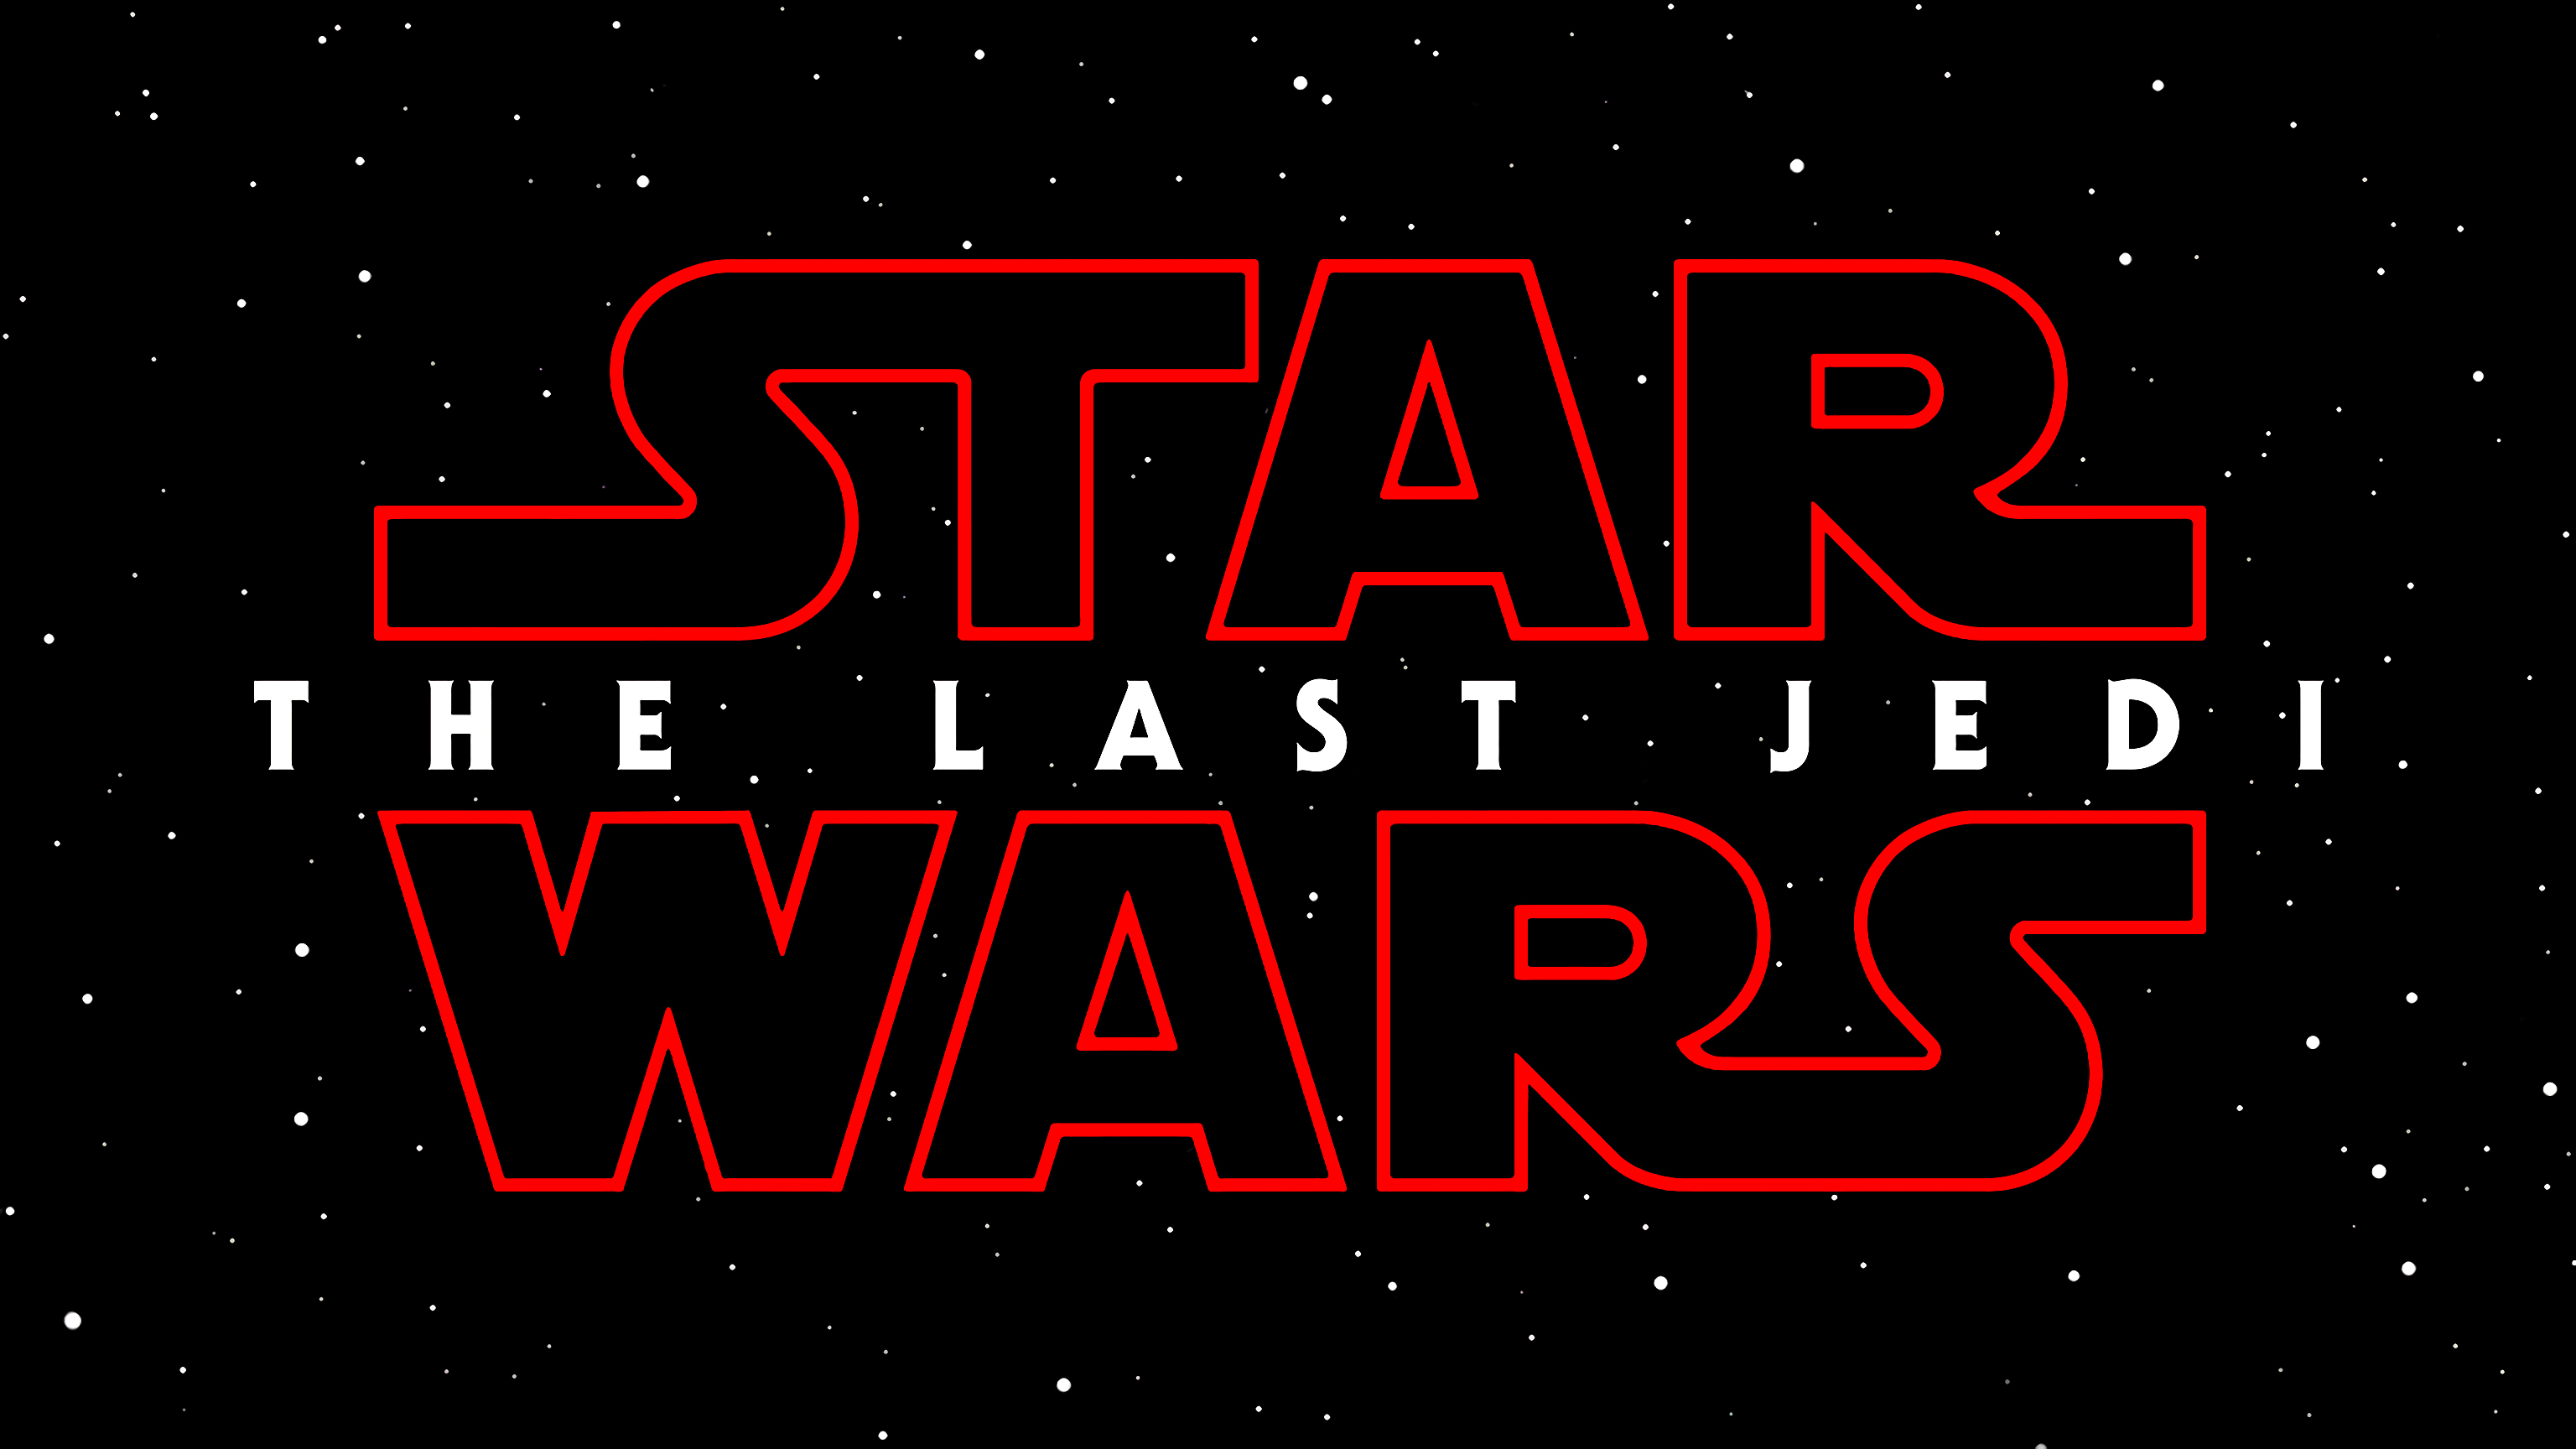 star wars the last jedi logo wallpaper background 62372 64319 hd wallpapers